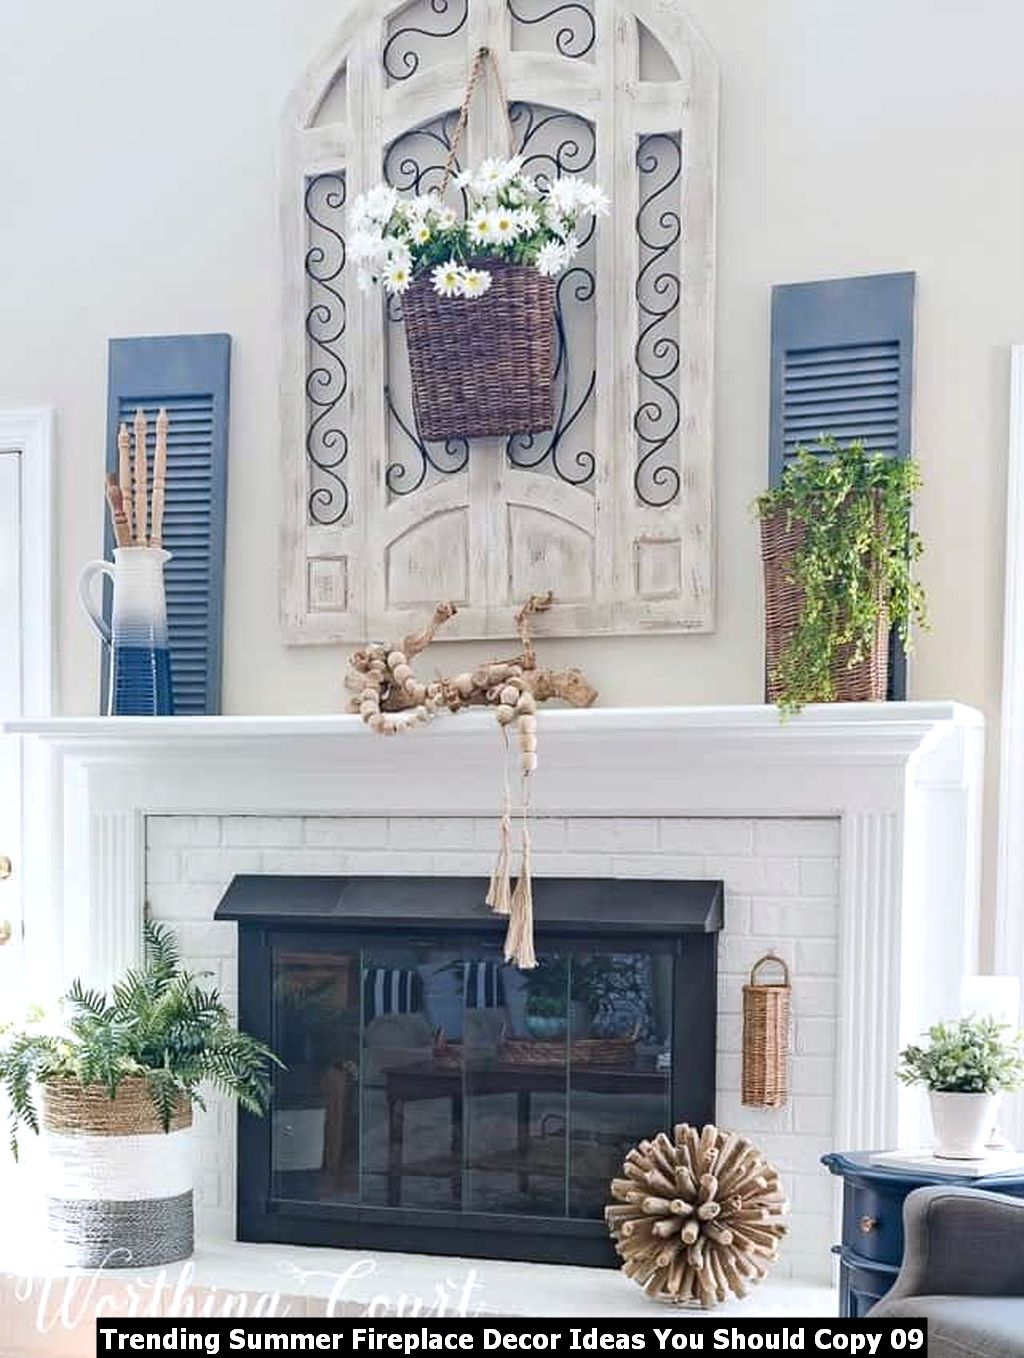 Trending Summer Fireplace Decor Ideas You Should Copy 09